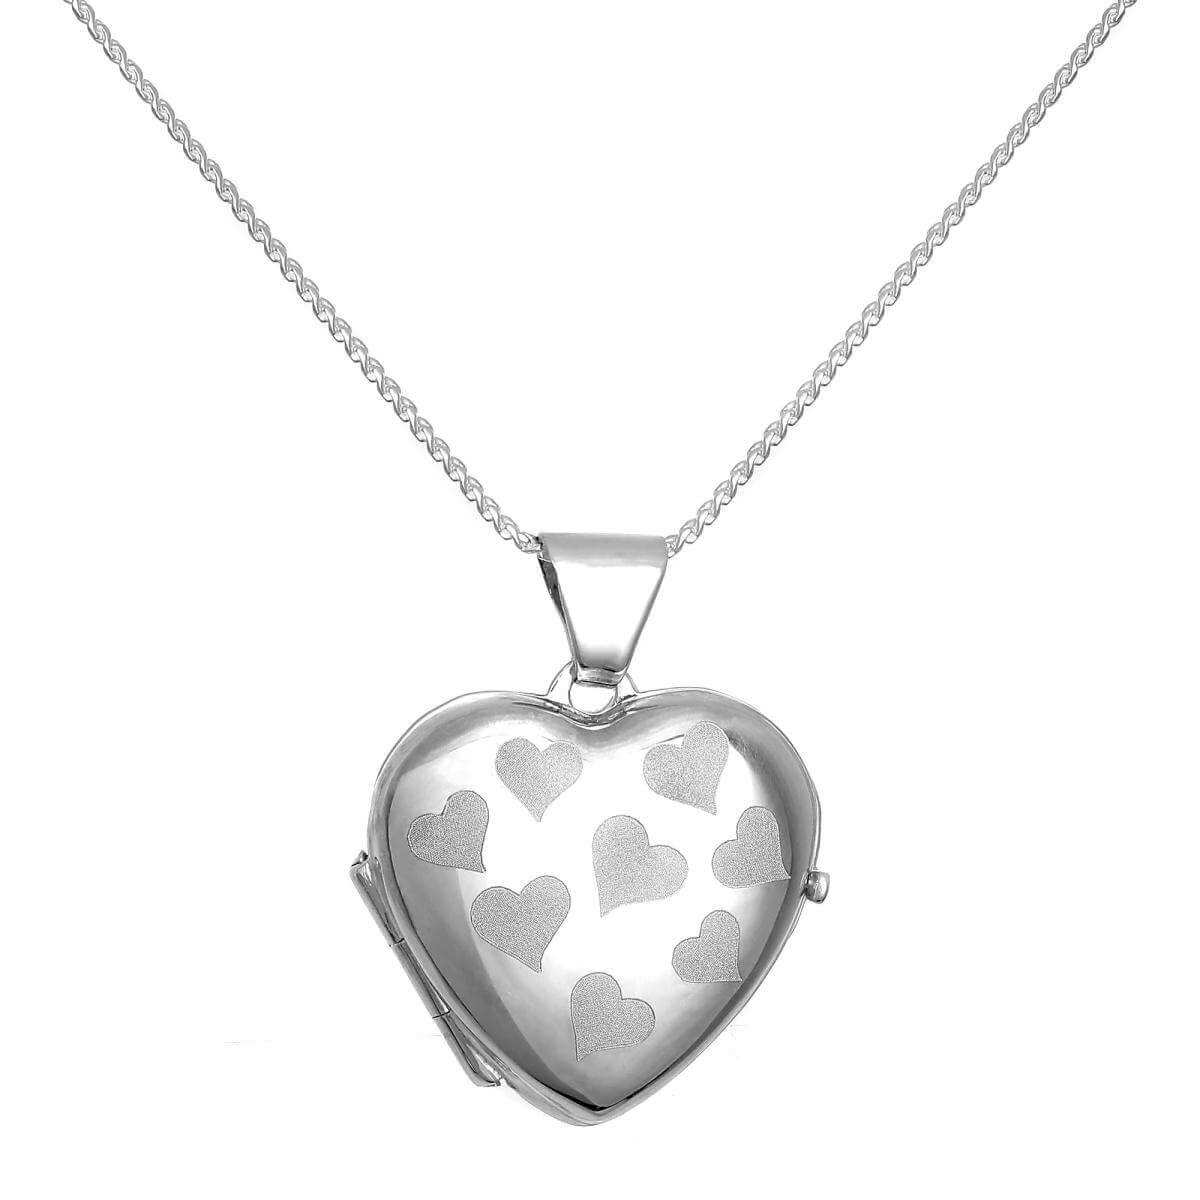 Sterling Silver Heart Locket with Matt Hearts on Chain